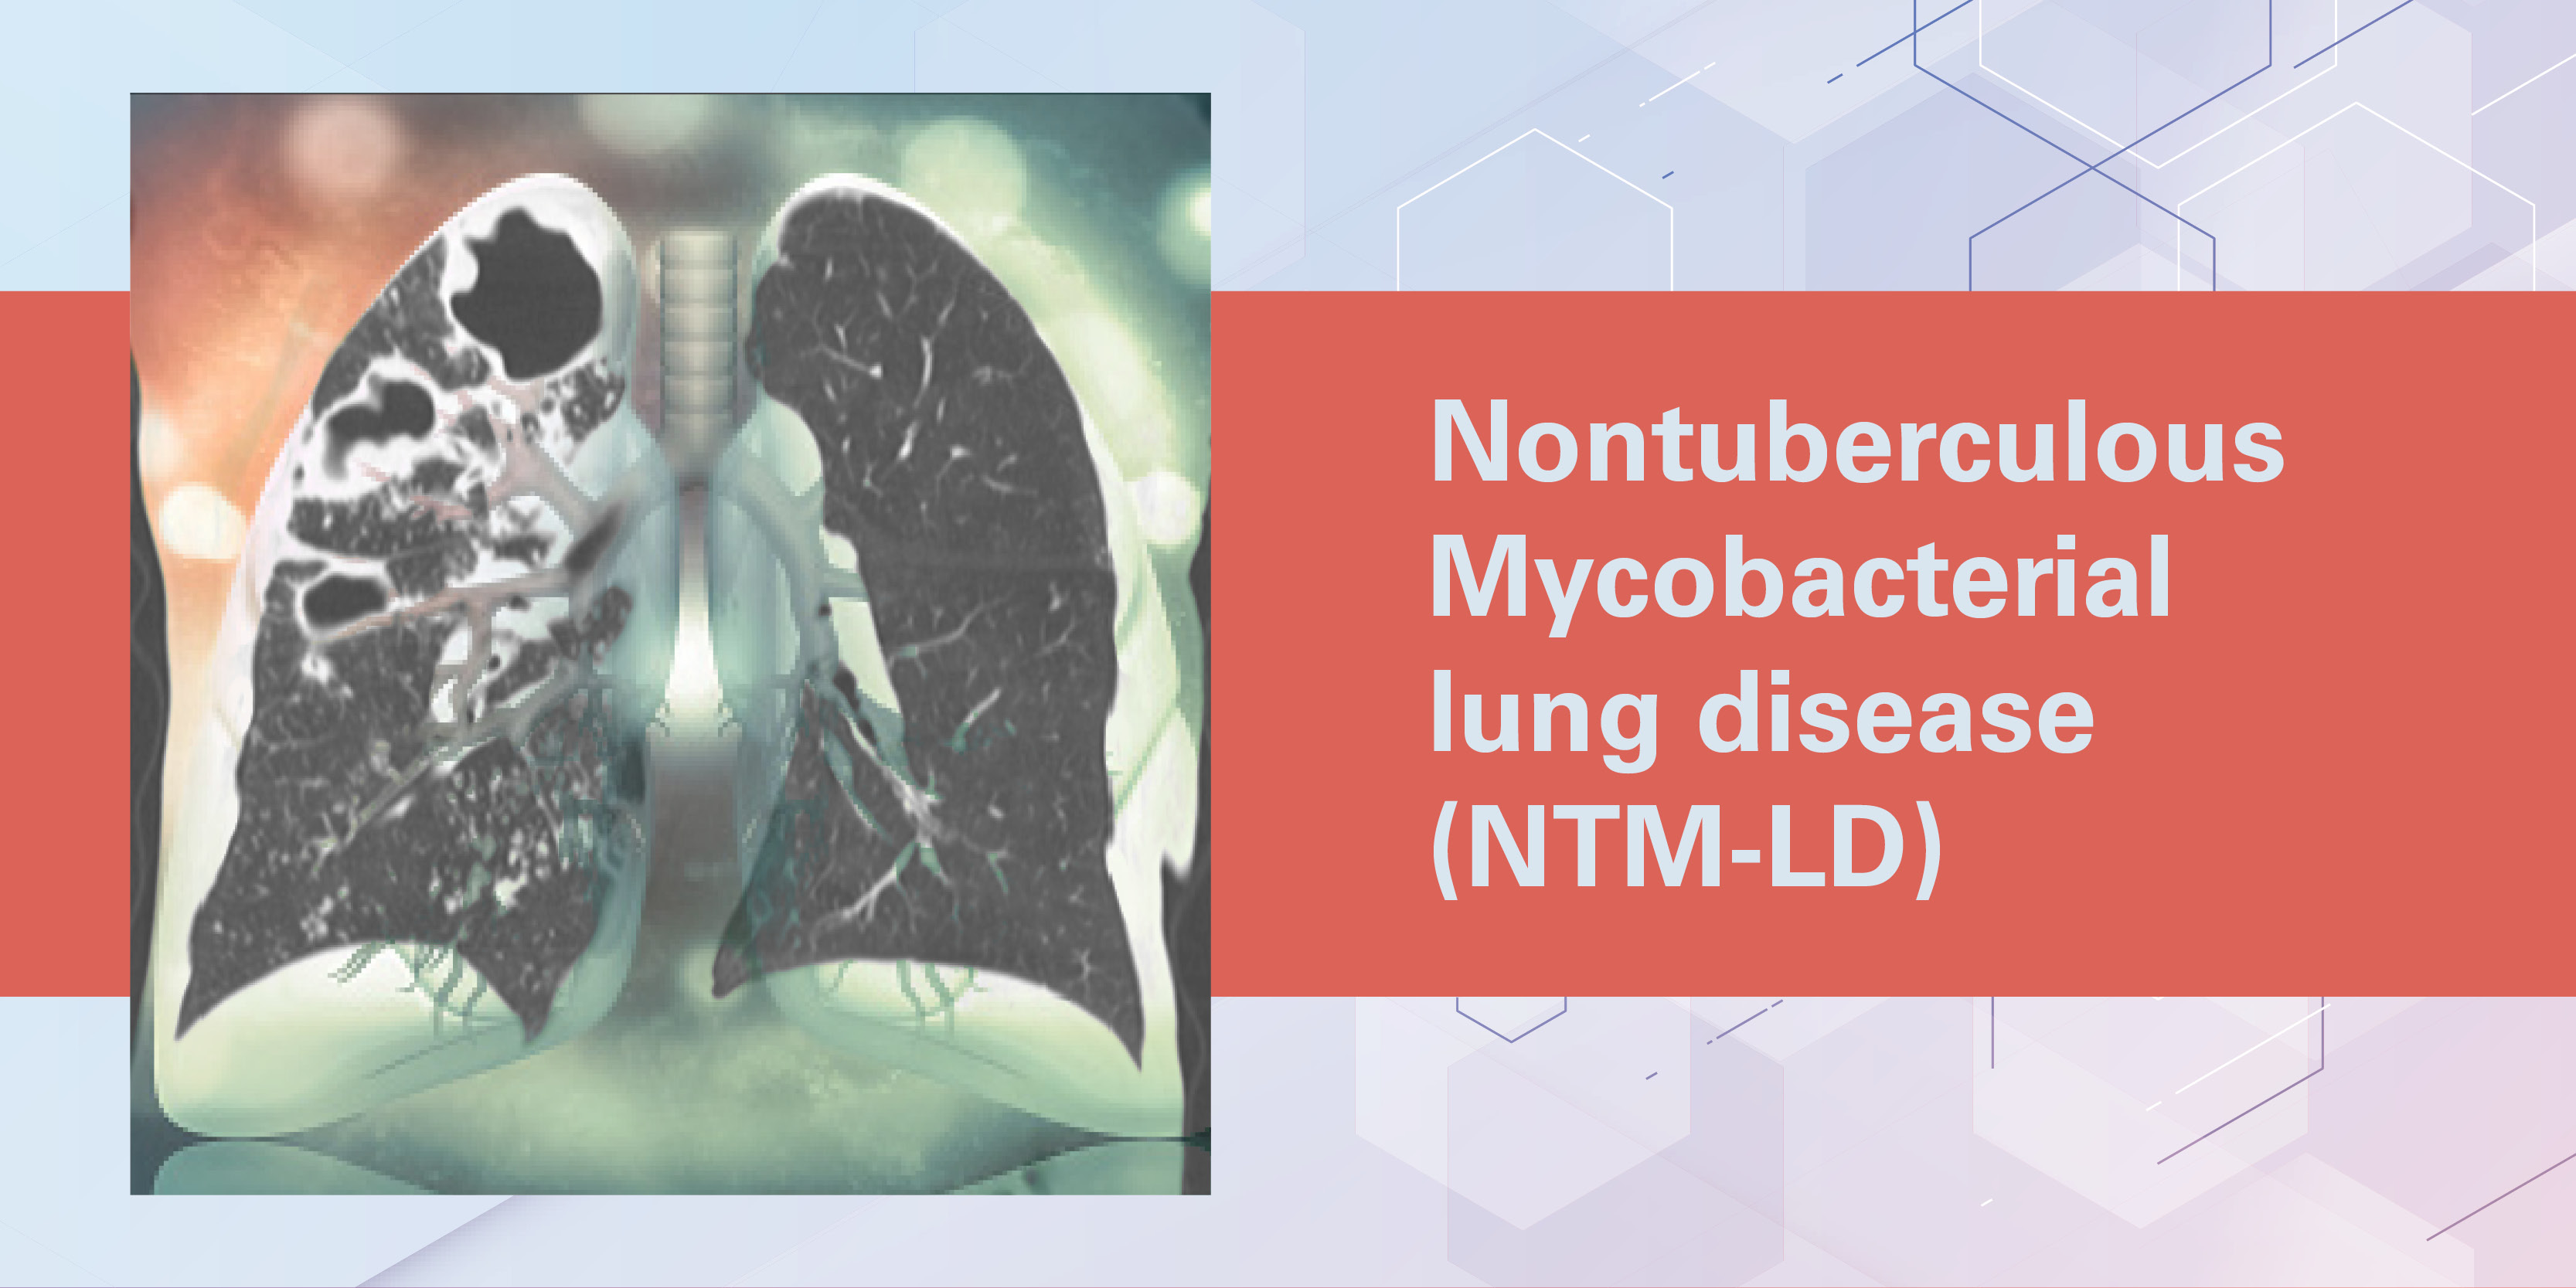 Can You Identify Patients with NTM? Diagnosis, Treatment & Monitoring